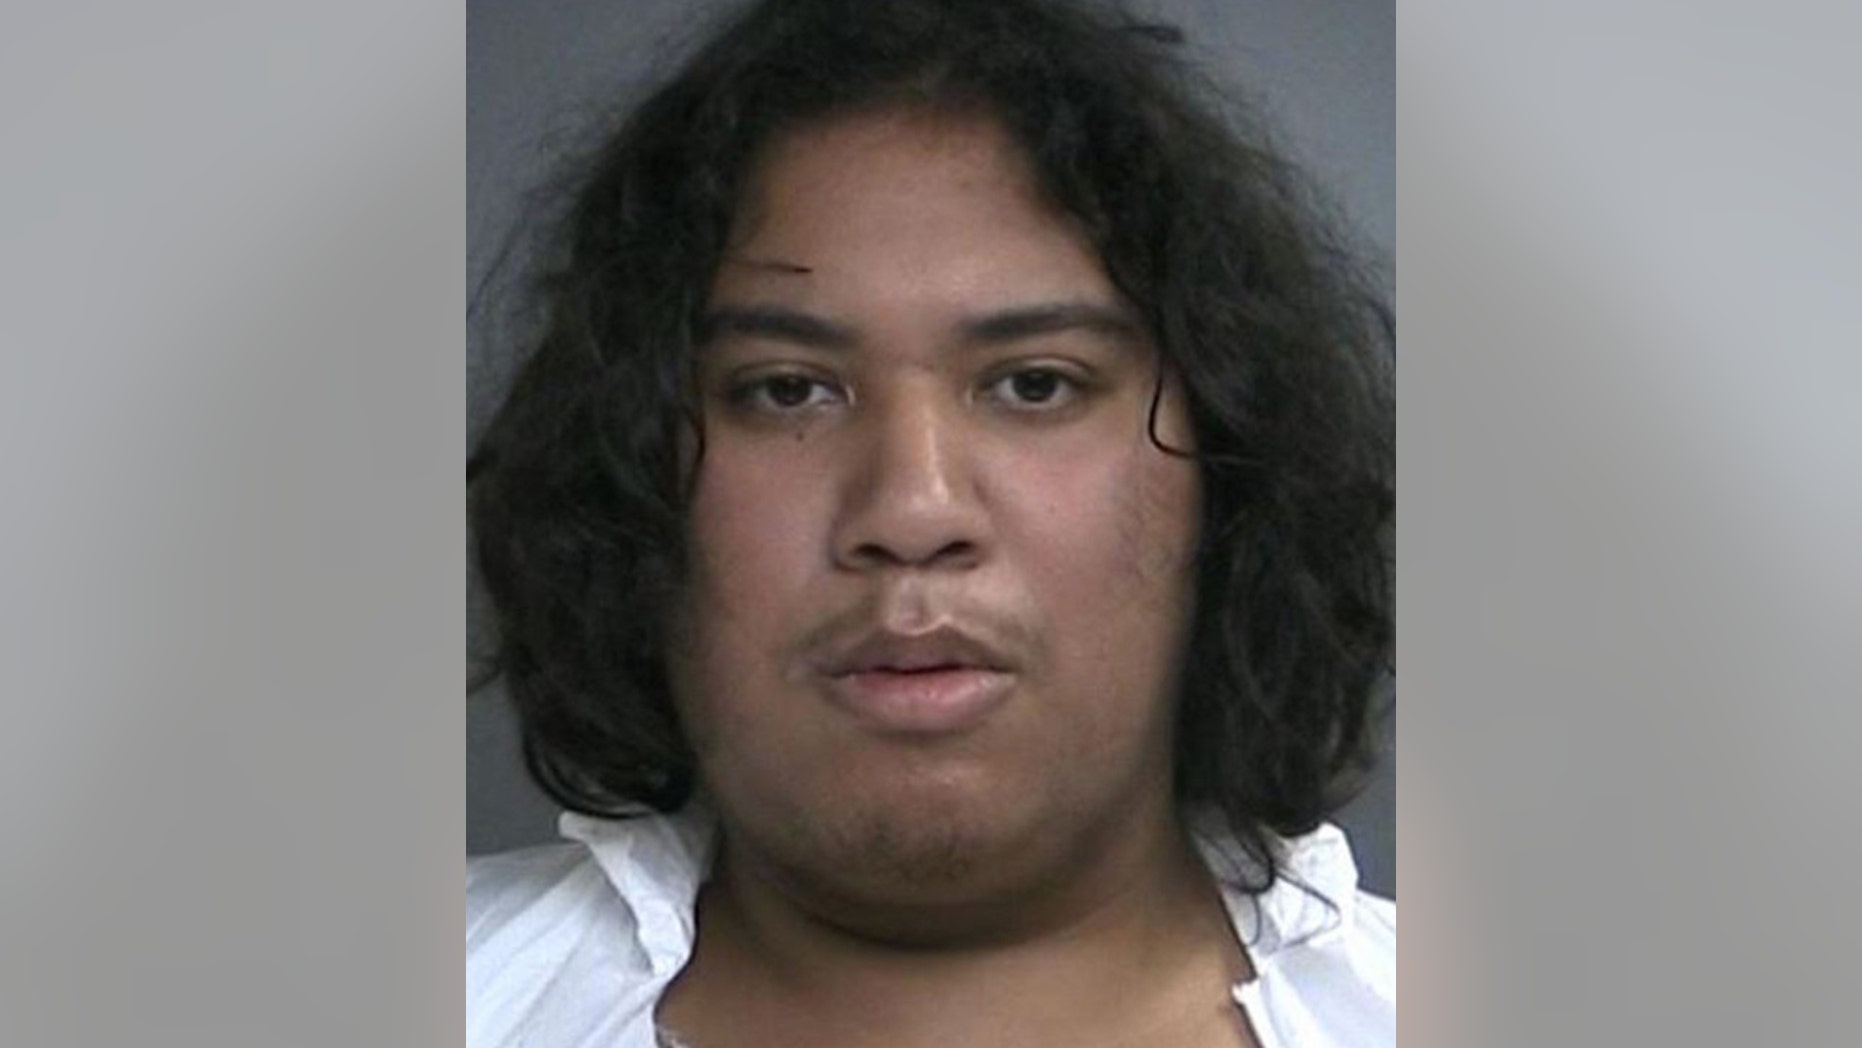 Robert Rivera, 19, fatally stabbed his brother while he was playing video games, police said.